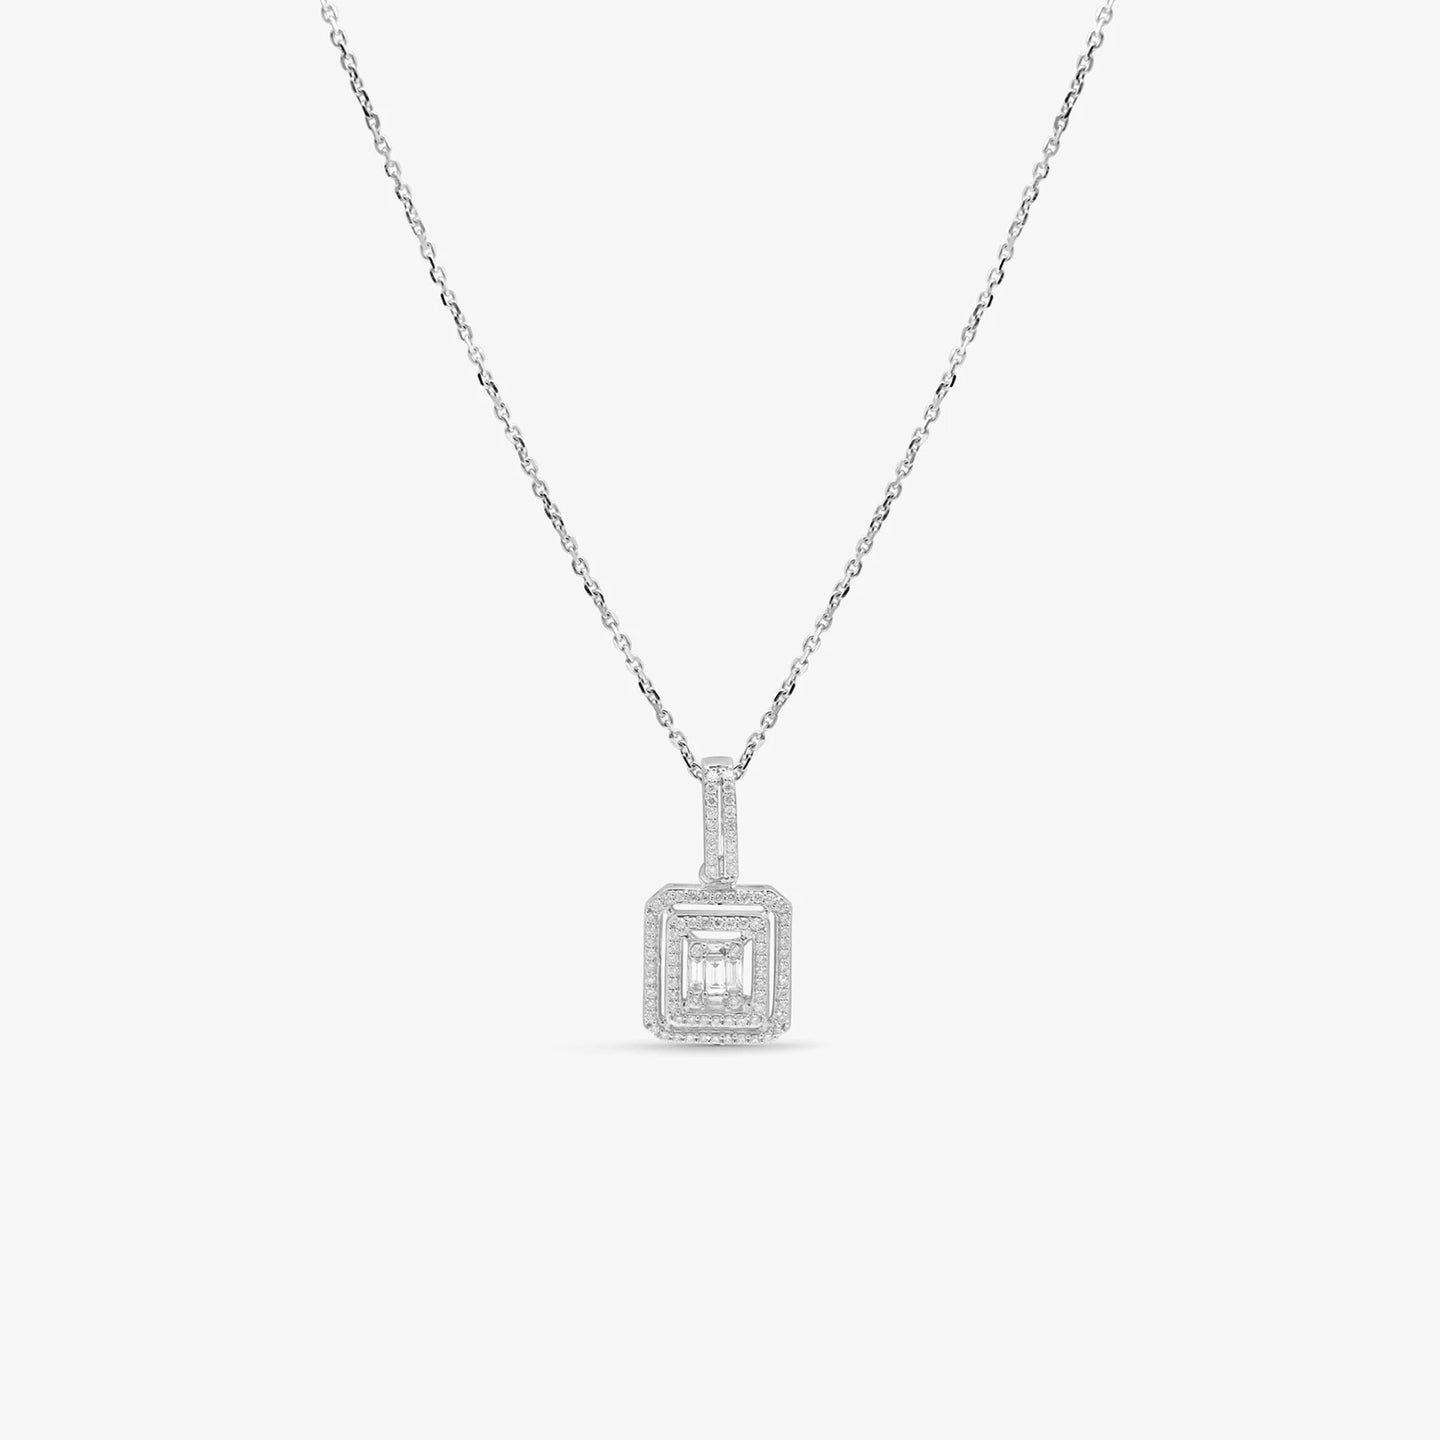 Baguette Diamond Double Halo Pendant Necklace With The Chain - estellacollection